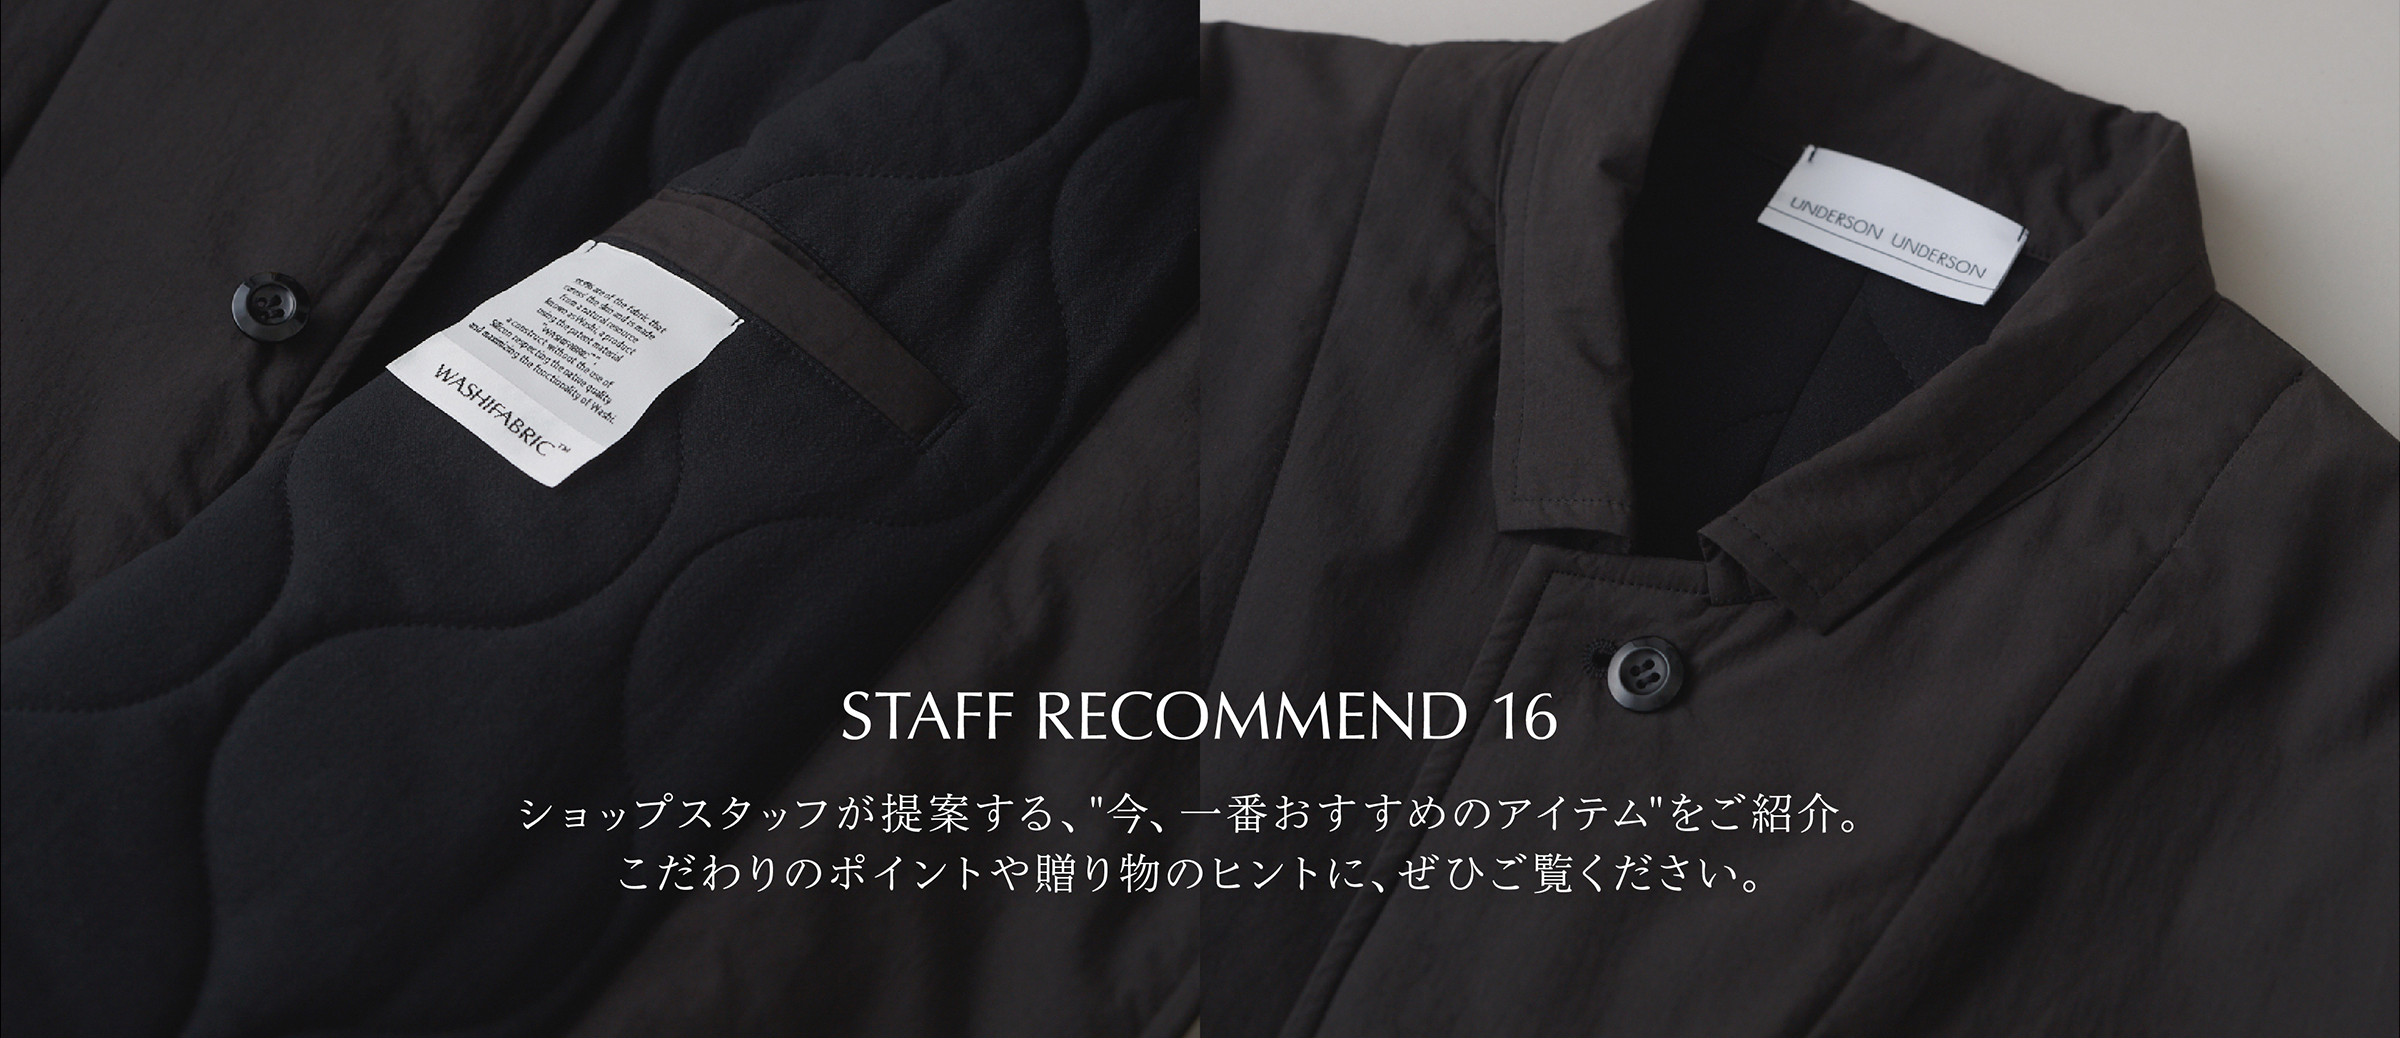 STAFF RECOMMEND 16